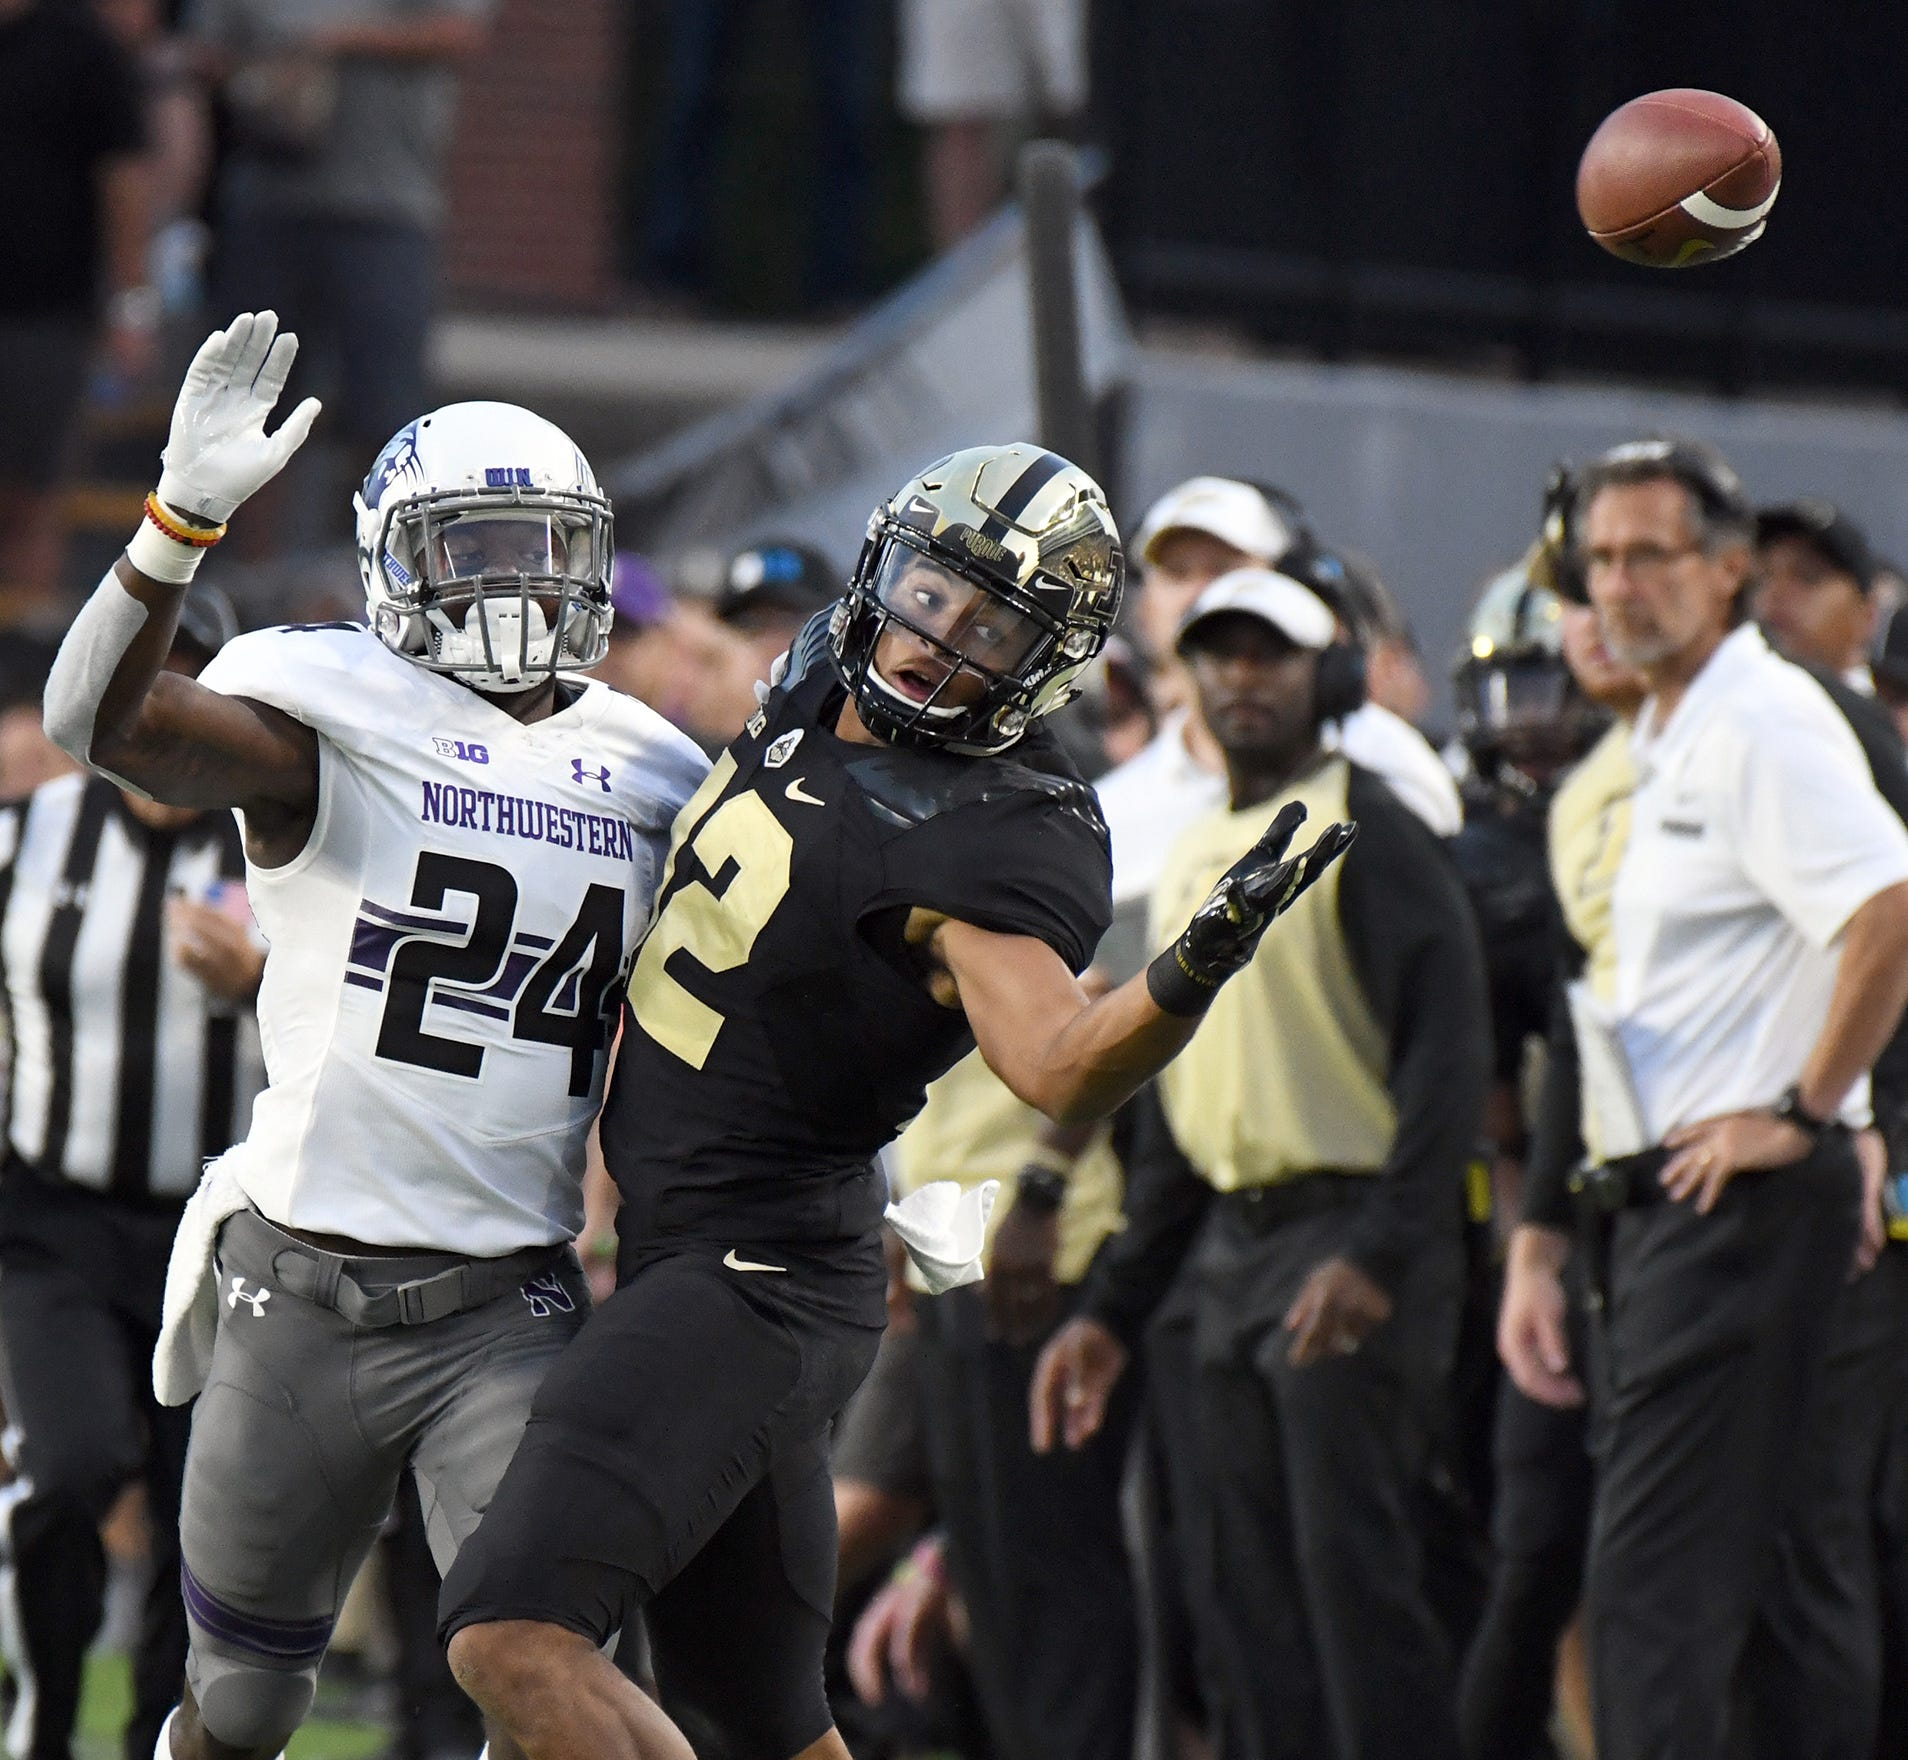 Purdue's Jared Sparks misses a catch in the Boilermakers 31-27 loss on Thursday August 30, 2018 to Northwestern in West Lafayette.